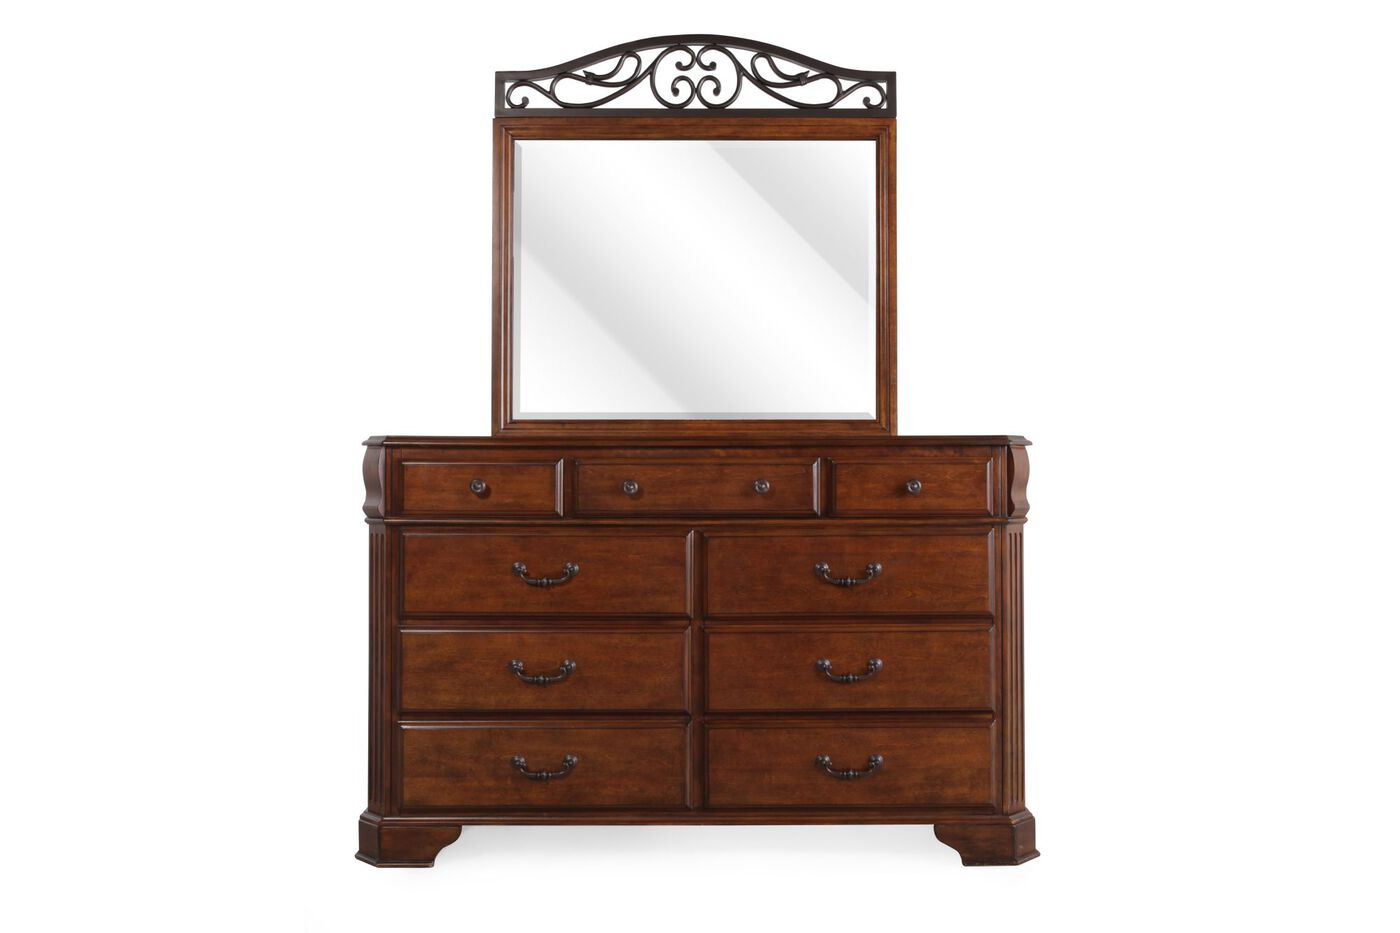 #61321E Ashley Wyatt Dresser And Mirror Mathis Brothers Furniture with 1400x933 px of Brand New White Dresser Ashley Furniture 9331400 pic @ avoidforclosure.info